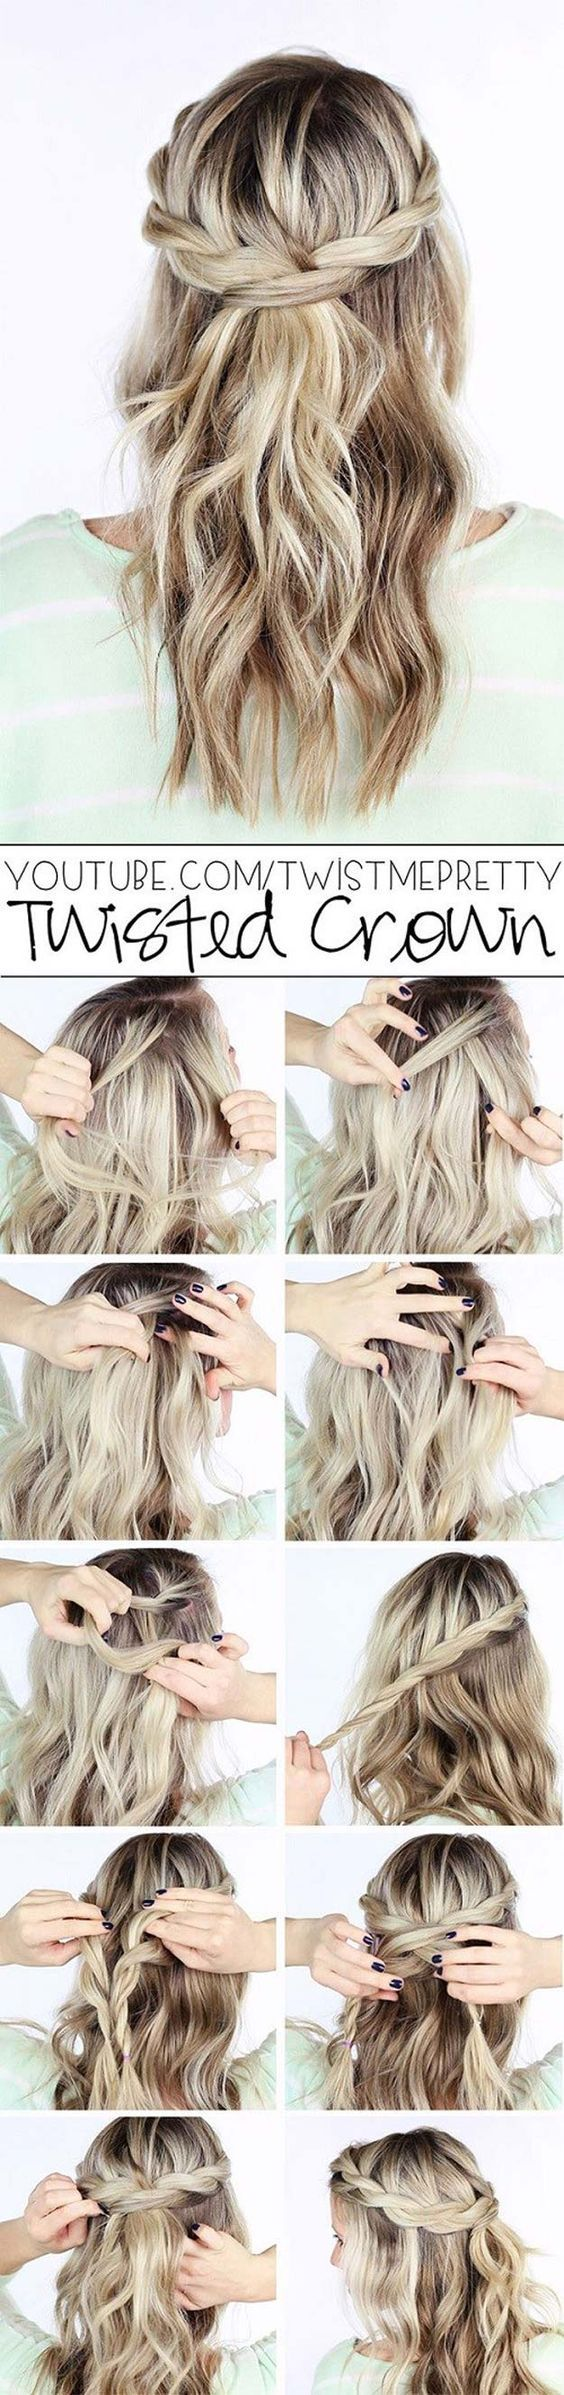 Fine 17 Best Ideas About How To Braid Cornrows On Pinterest In Style Short Hairstyles For Black Women Fulllsitofus